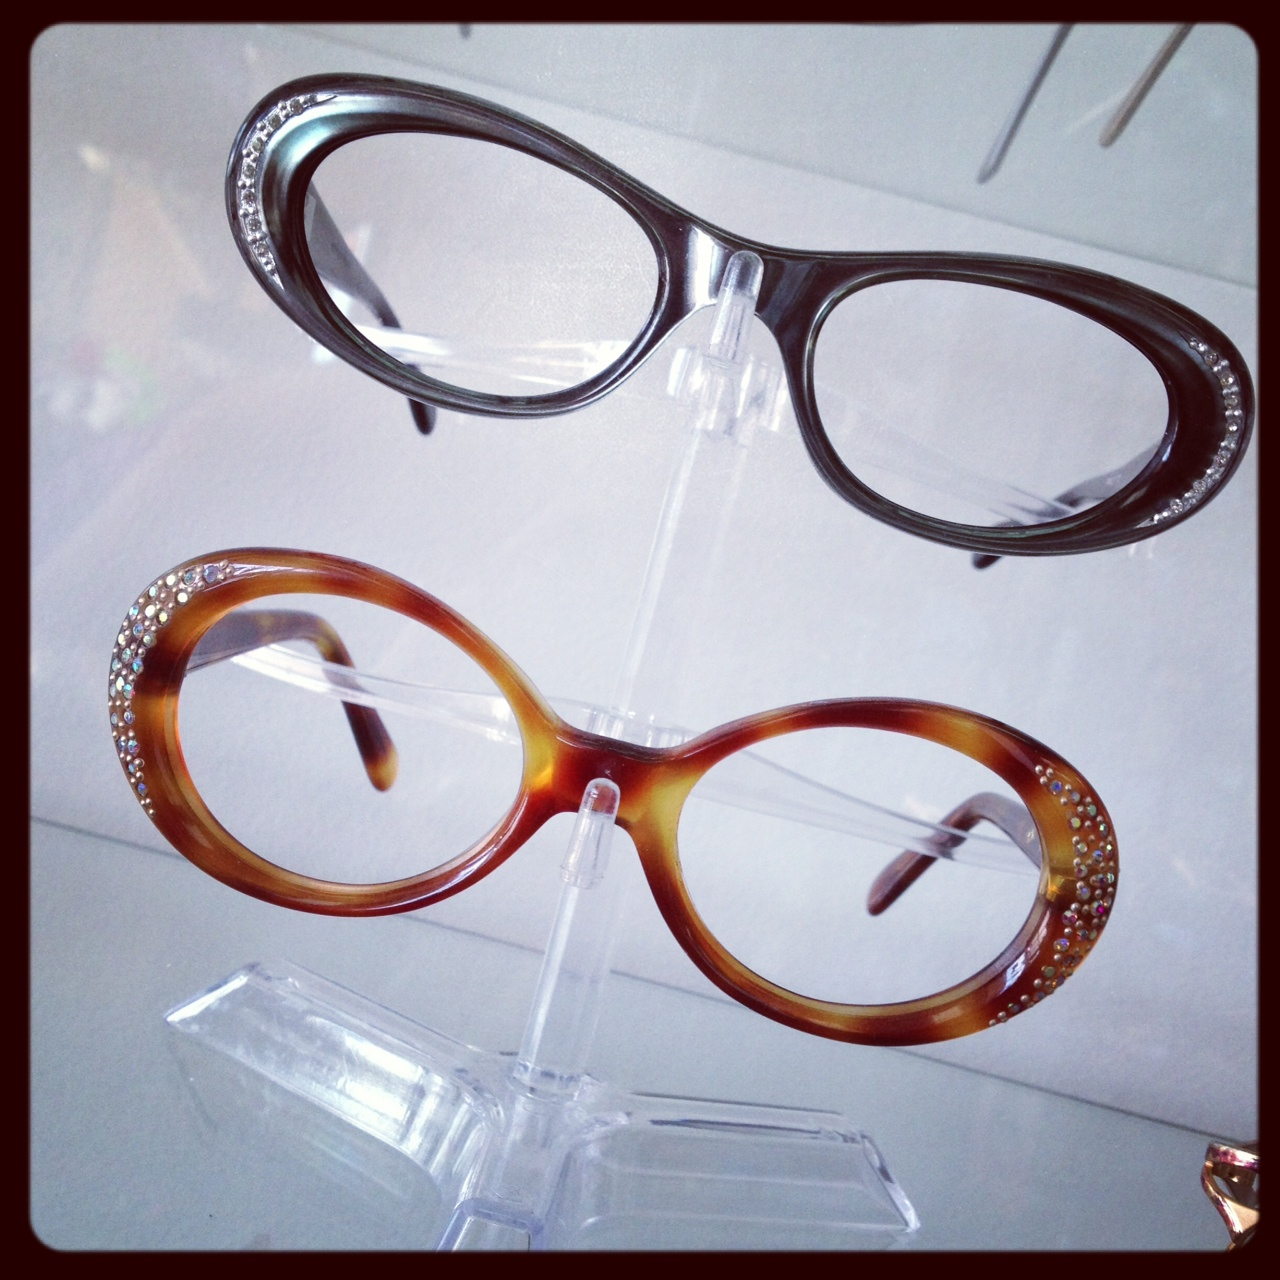 Glasses Frames Kelowna : The Good (New) Life: Looking at the World Through Fabulous ...